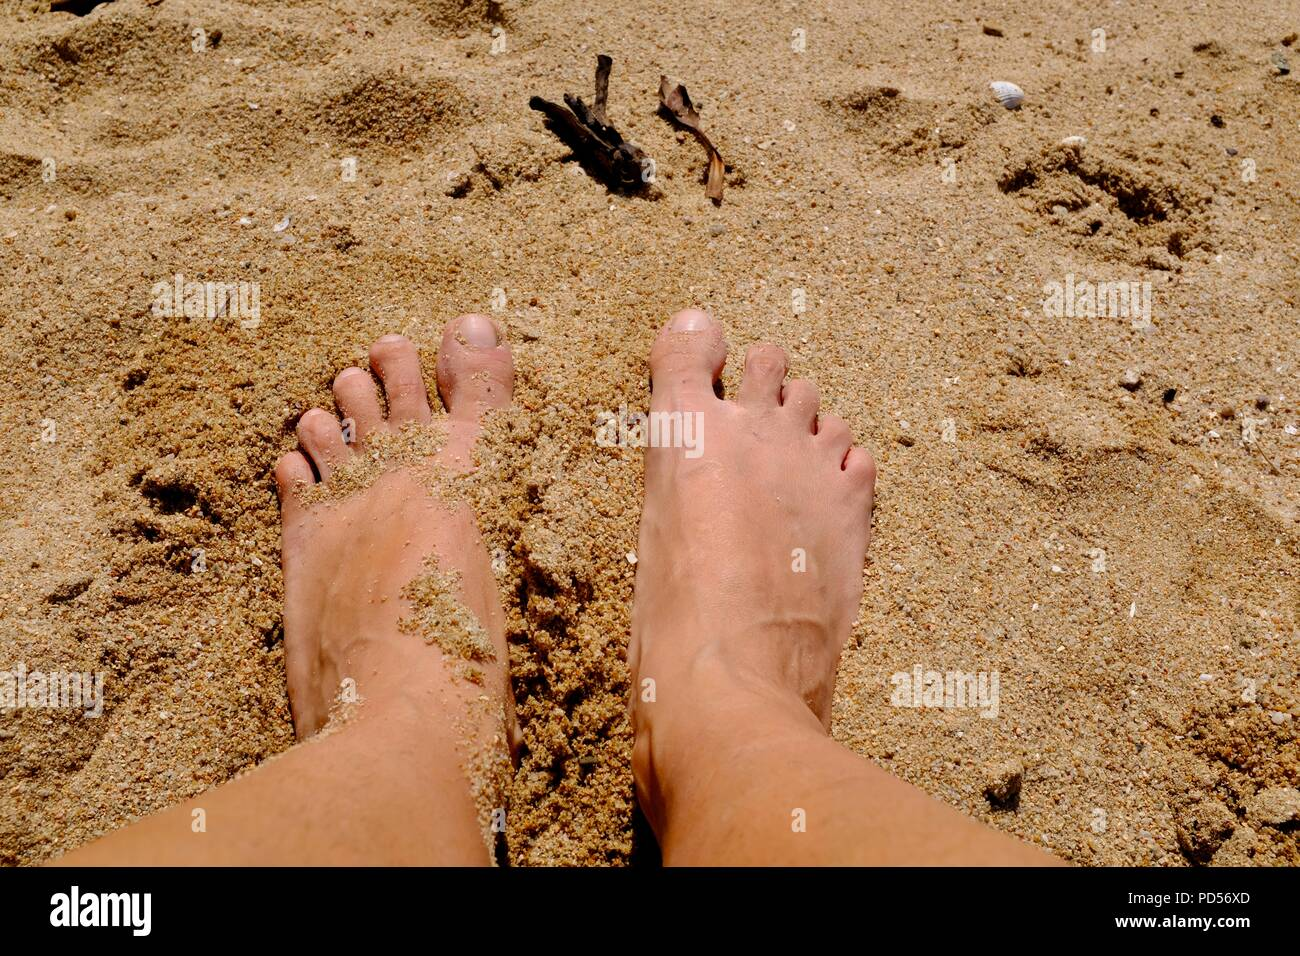 Feet in the sand, Toomulla QLD, Australia - Stock Image